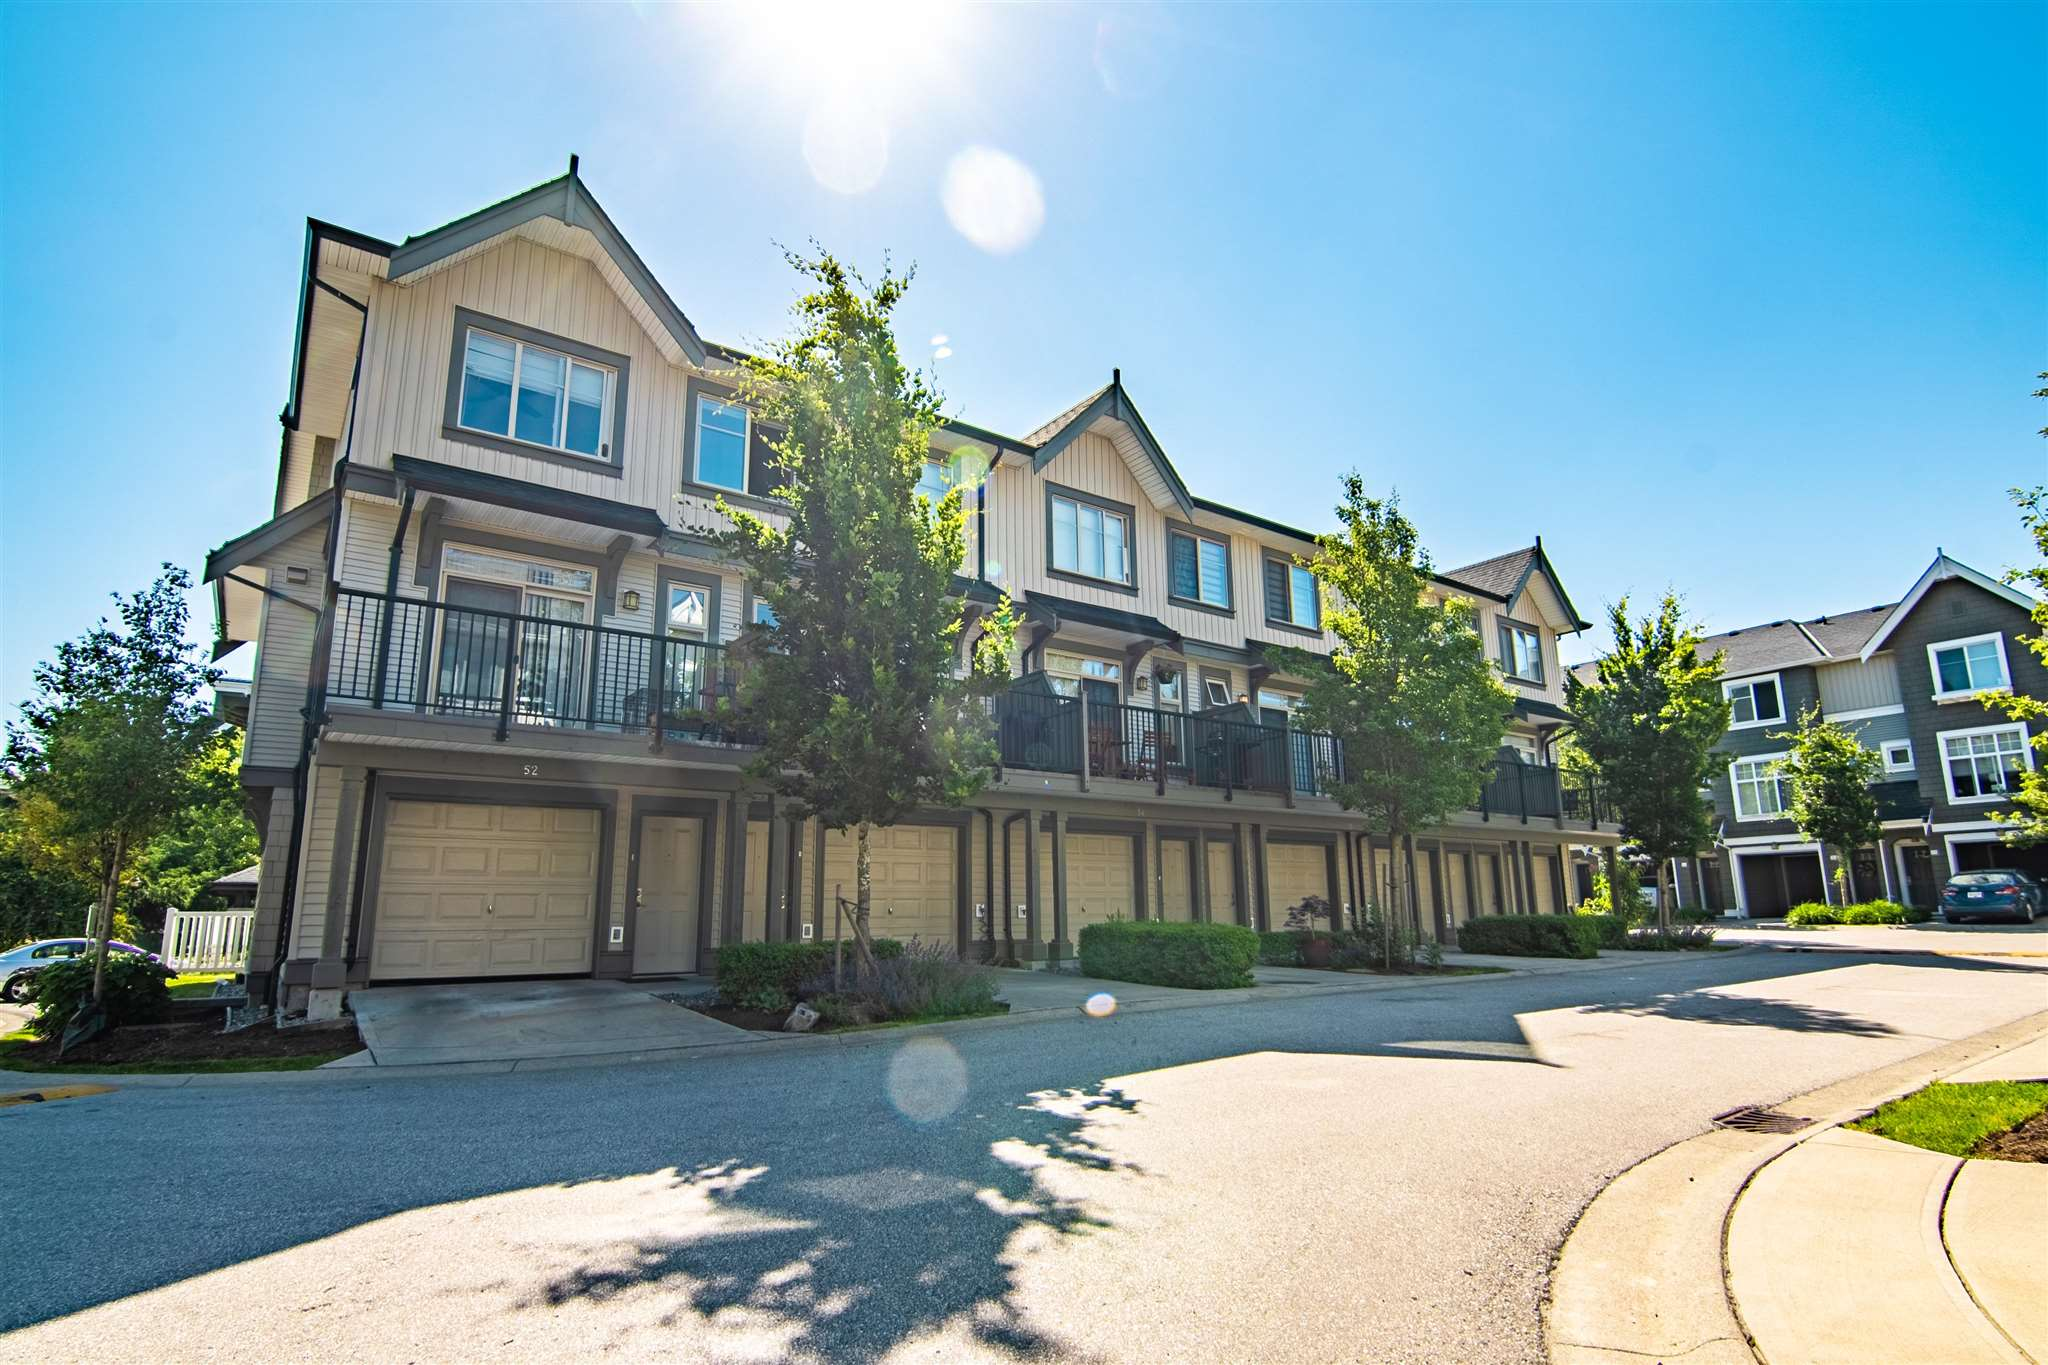 52 31098 WESTRIDGE PLACE - Abbotsford West Townhouse for sale, 3 Bedrooms (R2596085) - #1